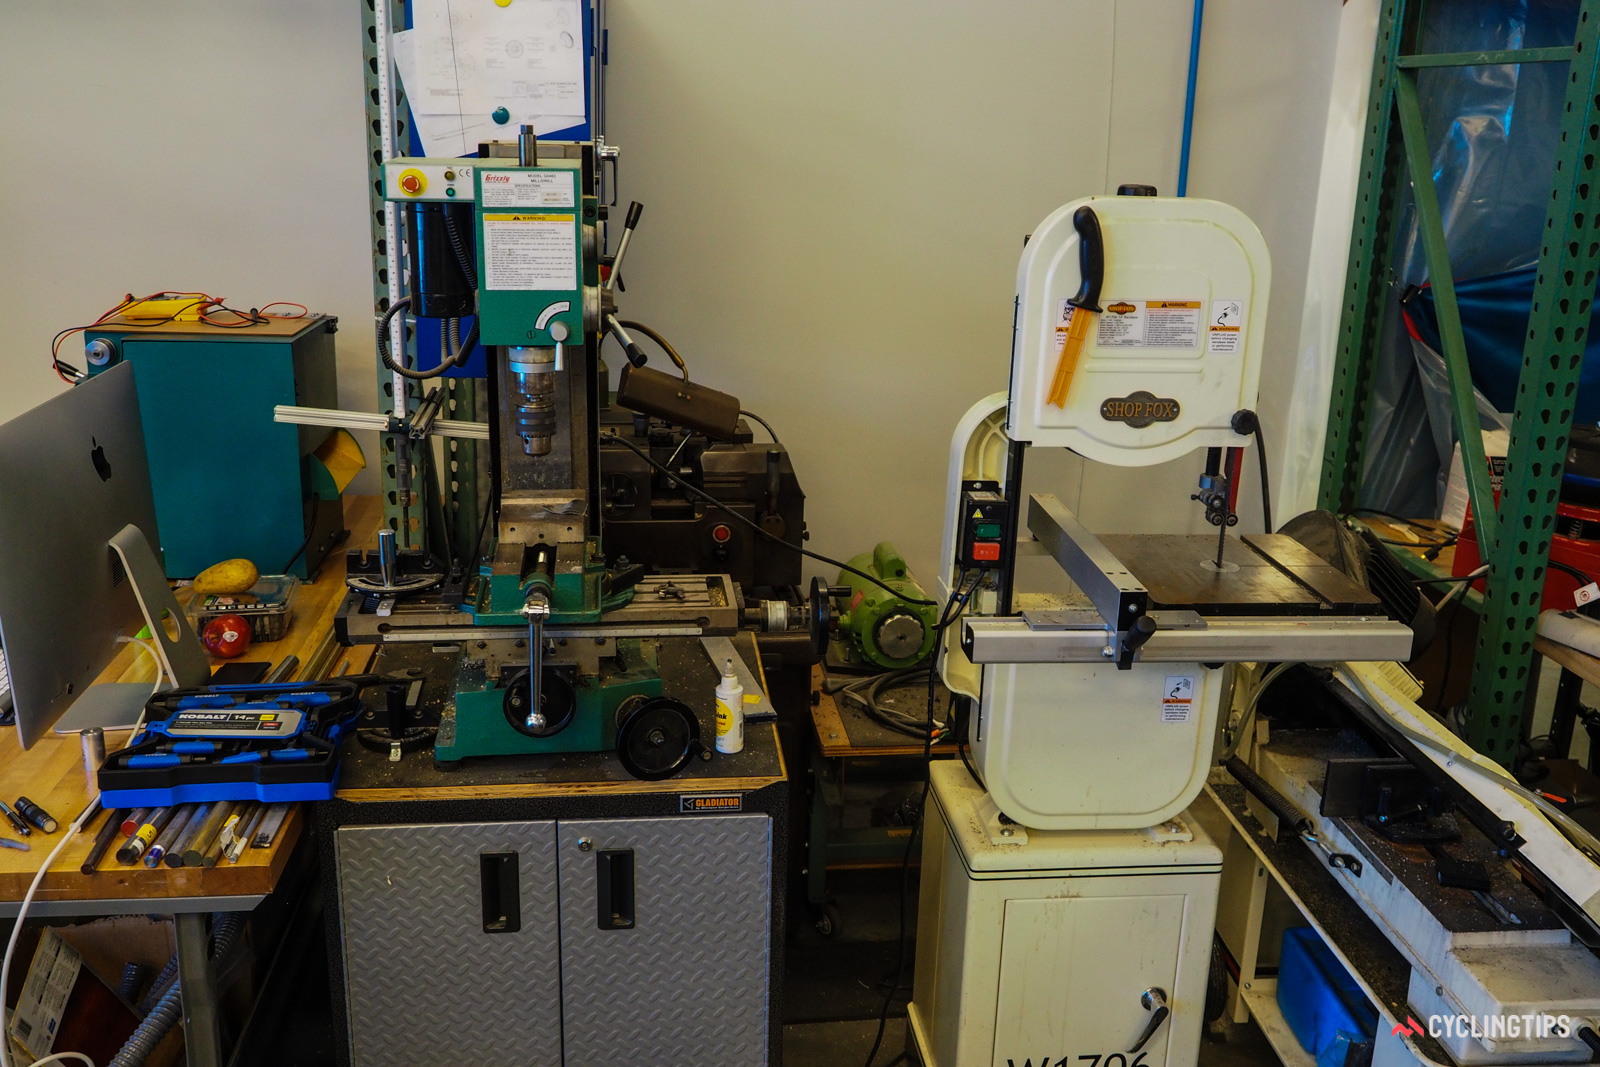 A band saw and drill press are often put into use as well.